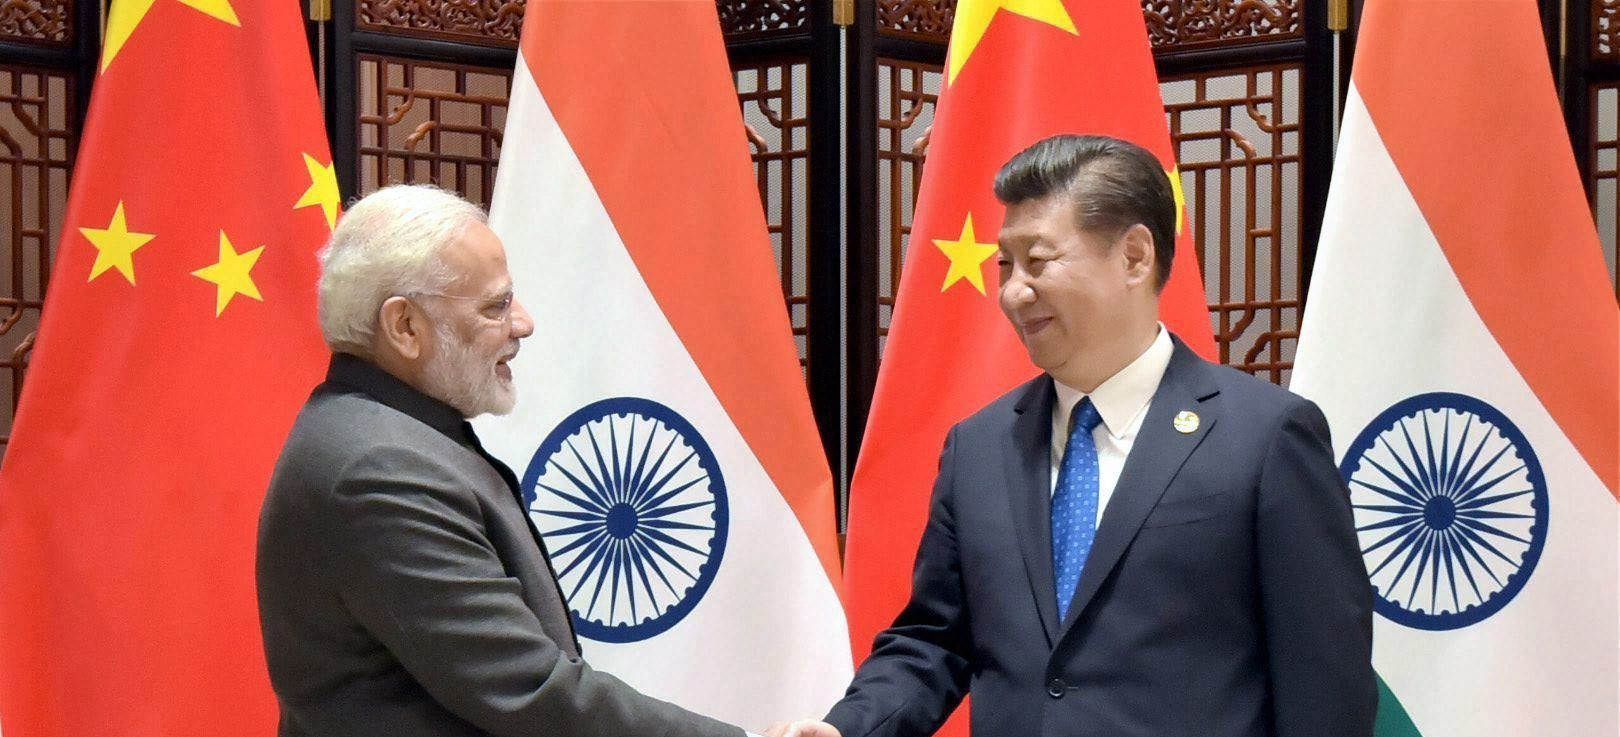 Debate: India's 'Inclusive' Indo-Pacific Policy Seeks to Balance US, China